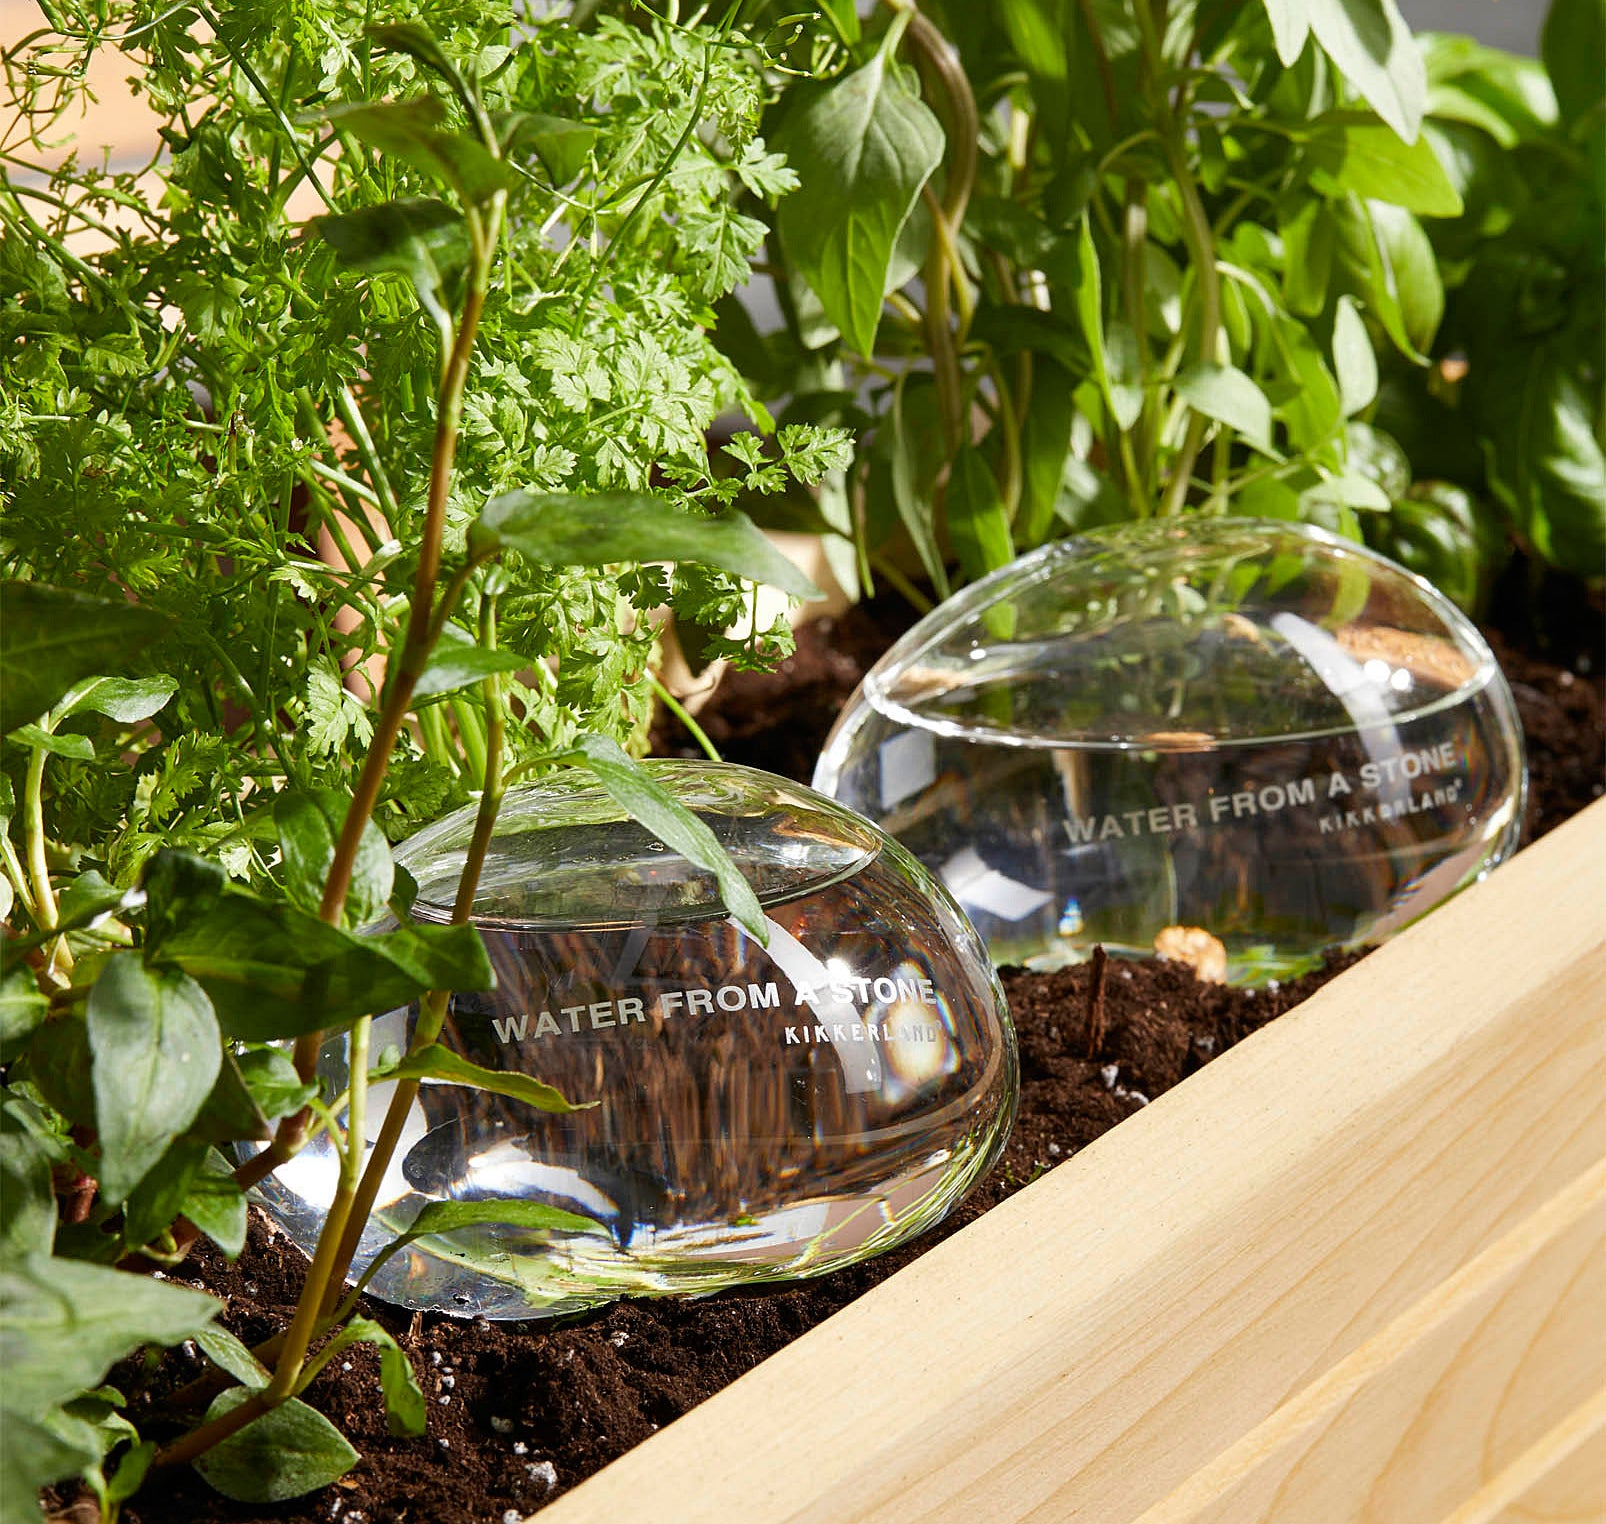 Two glass globes sitting in a bed of plants